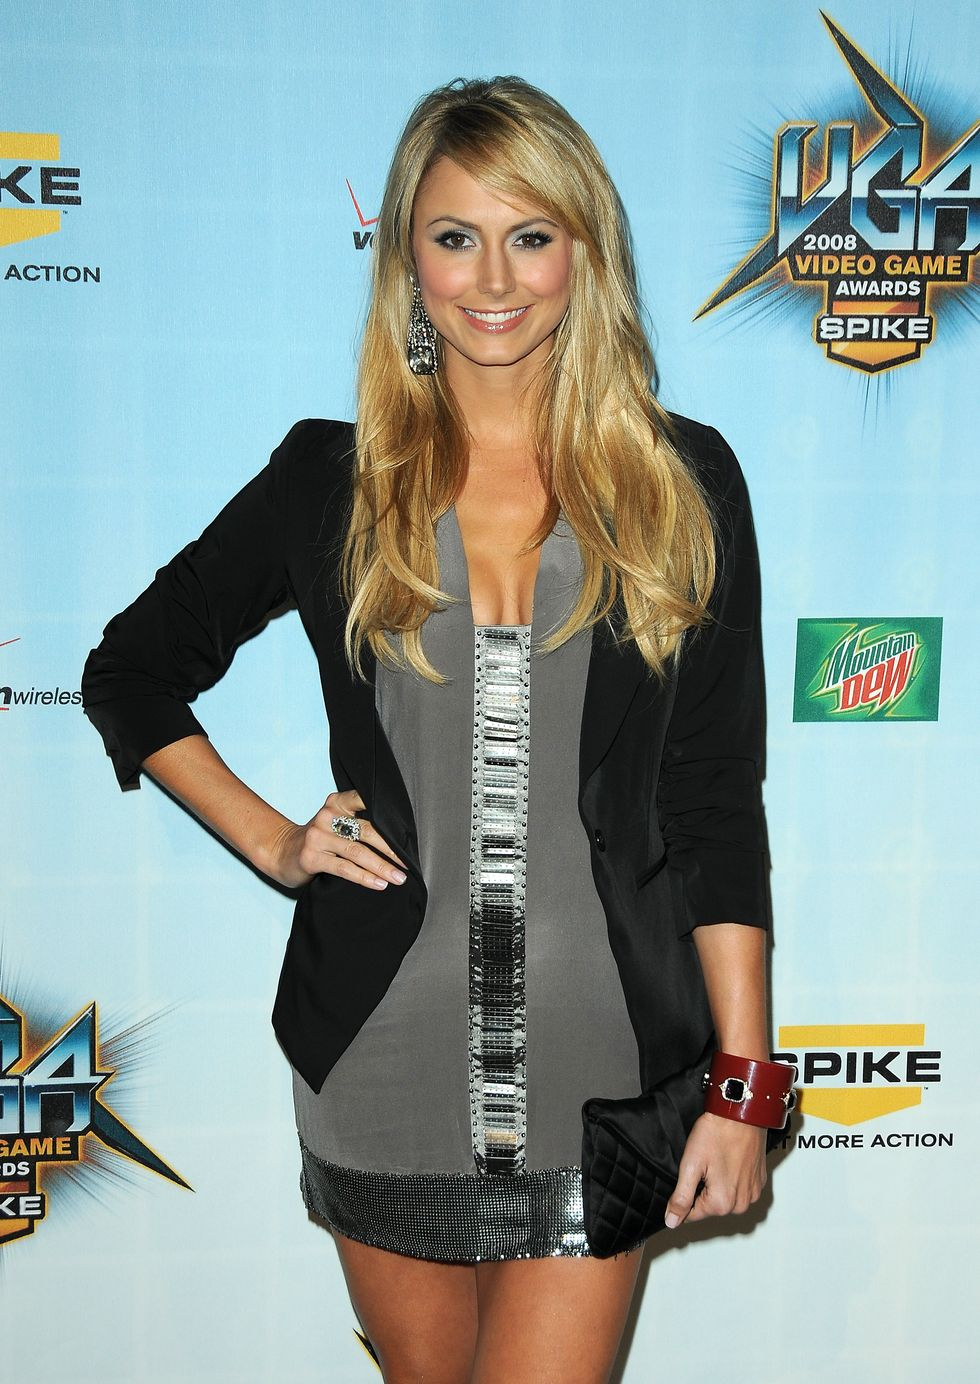 stacy-keibler-spike-tvs-2008-video-game-awards-in-culver-city-04